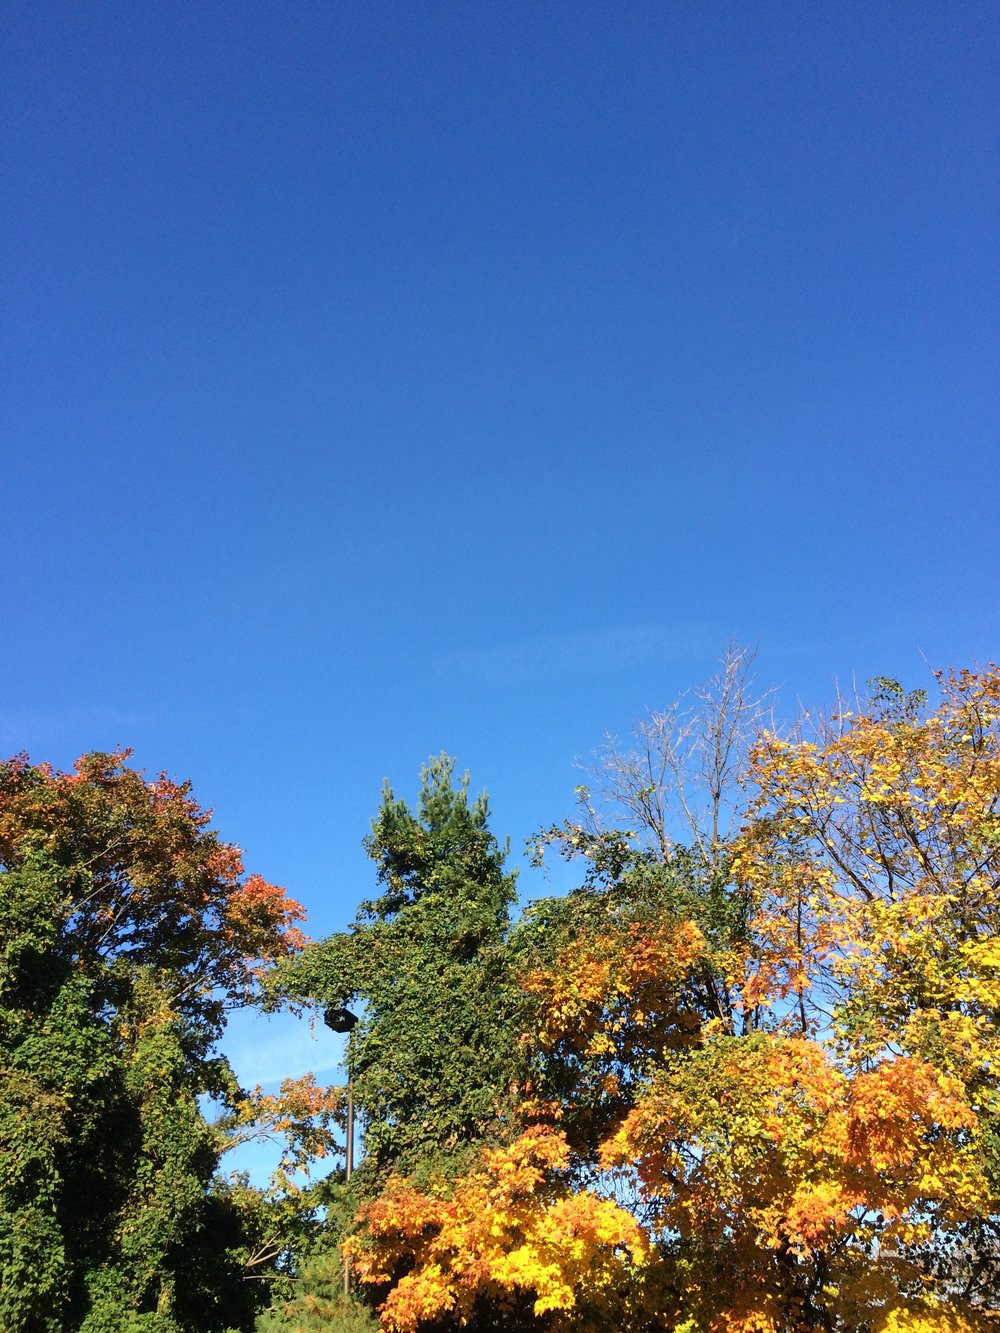 Not a cloud in the sky.